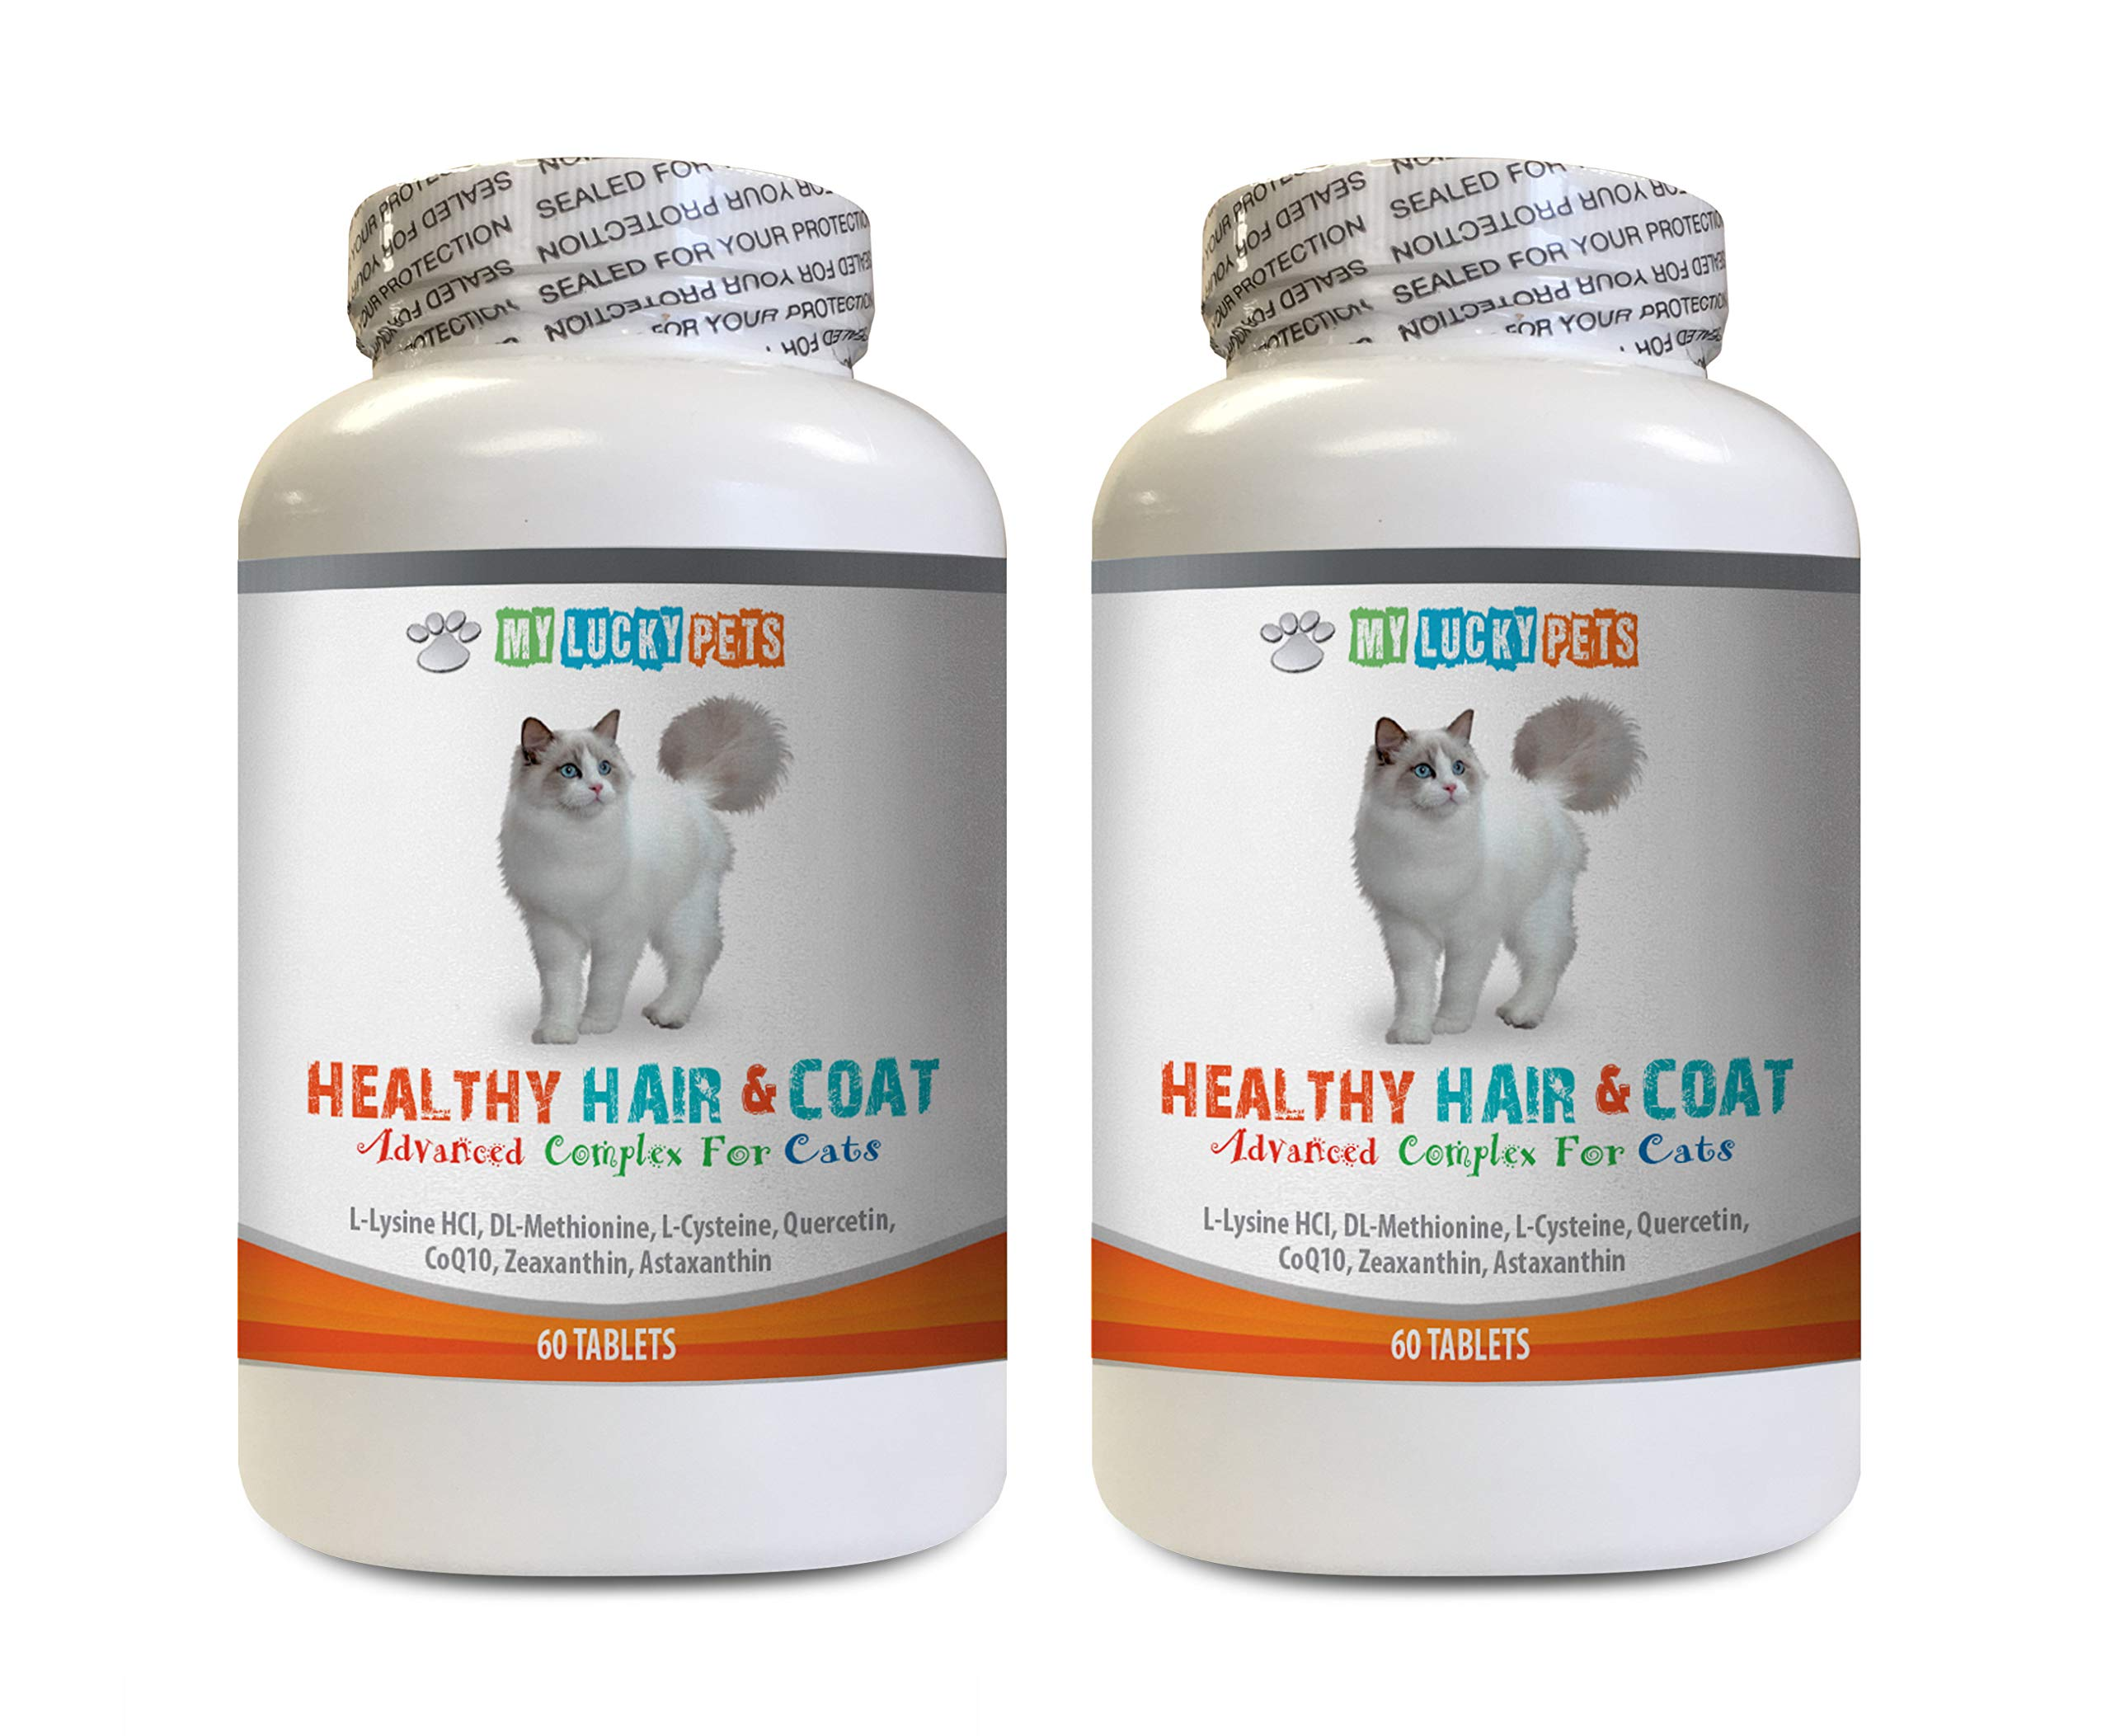 MY LUCKY PETS LLC cat Dry Skin - Cats Healthy Hair and Coat - Good Immune Response - Nail Health - Shiny Coat - Vitamin a for Cats - 2 Bottles (120 Tablets)